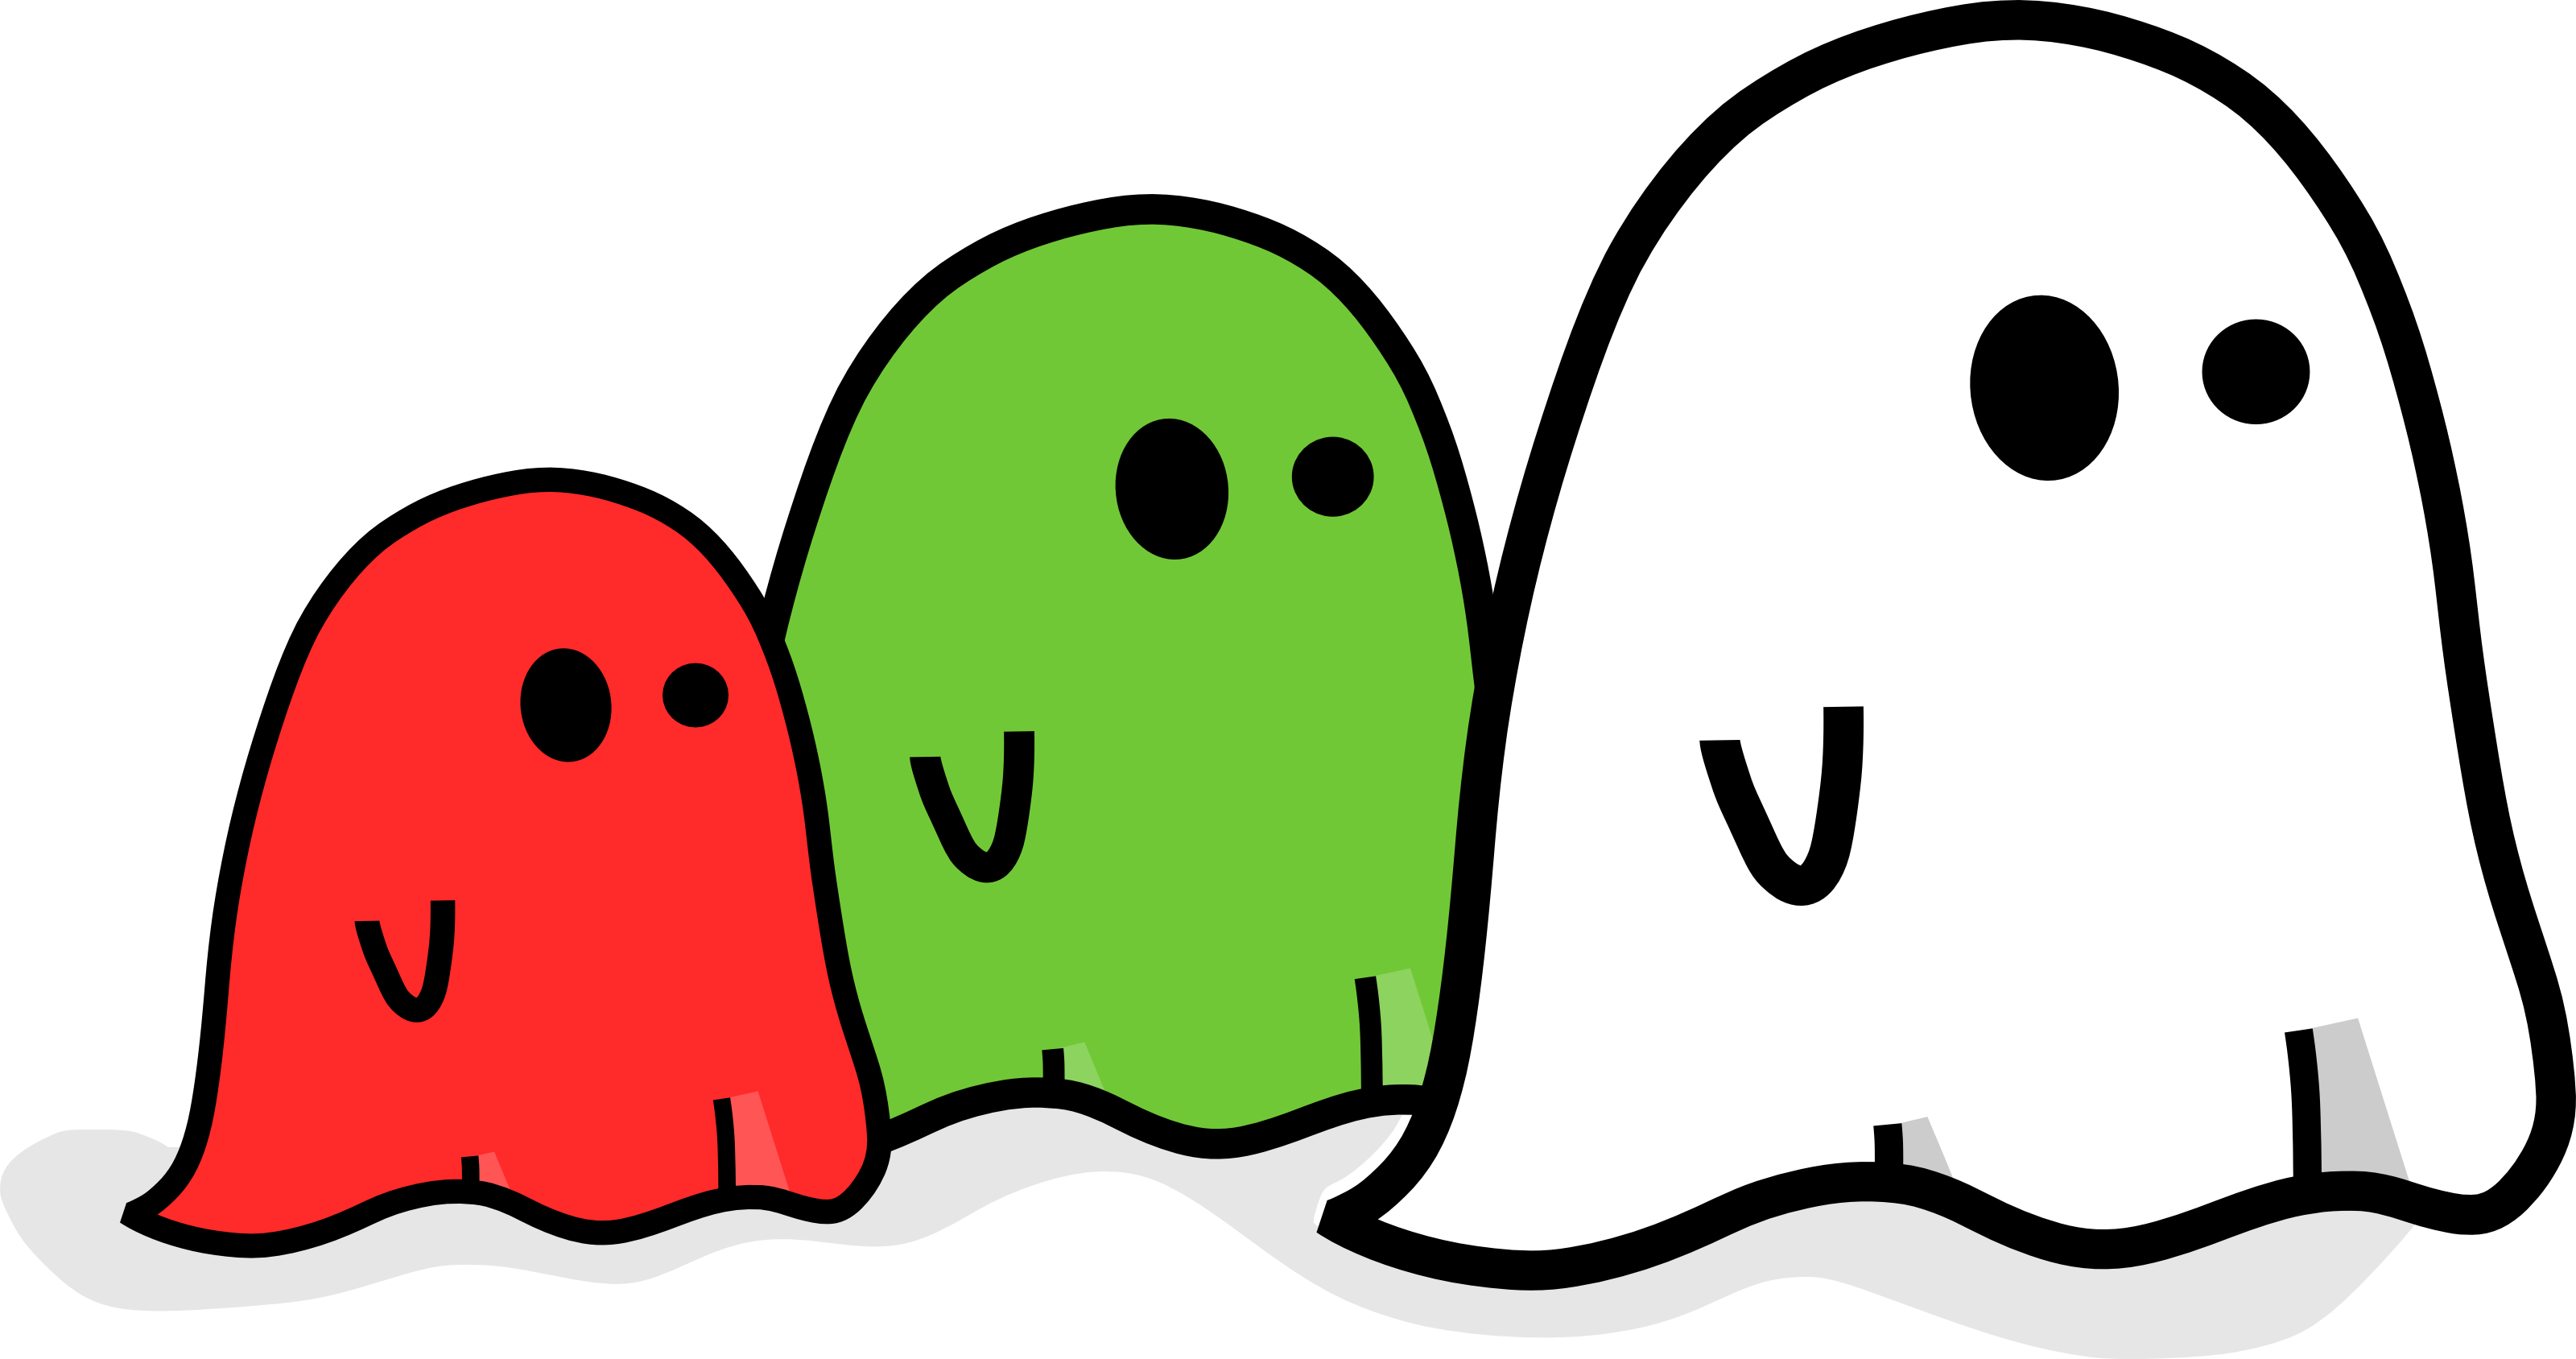 Halloween Ghost Free Download PNG Image